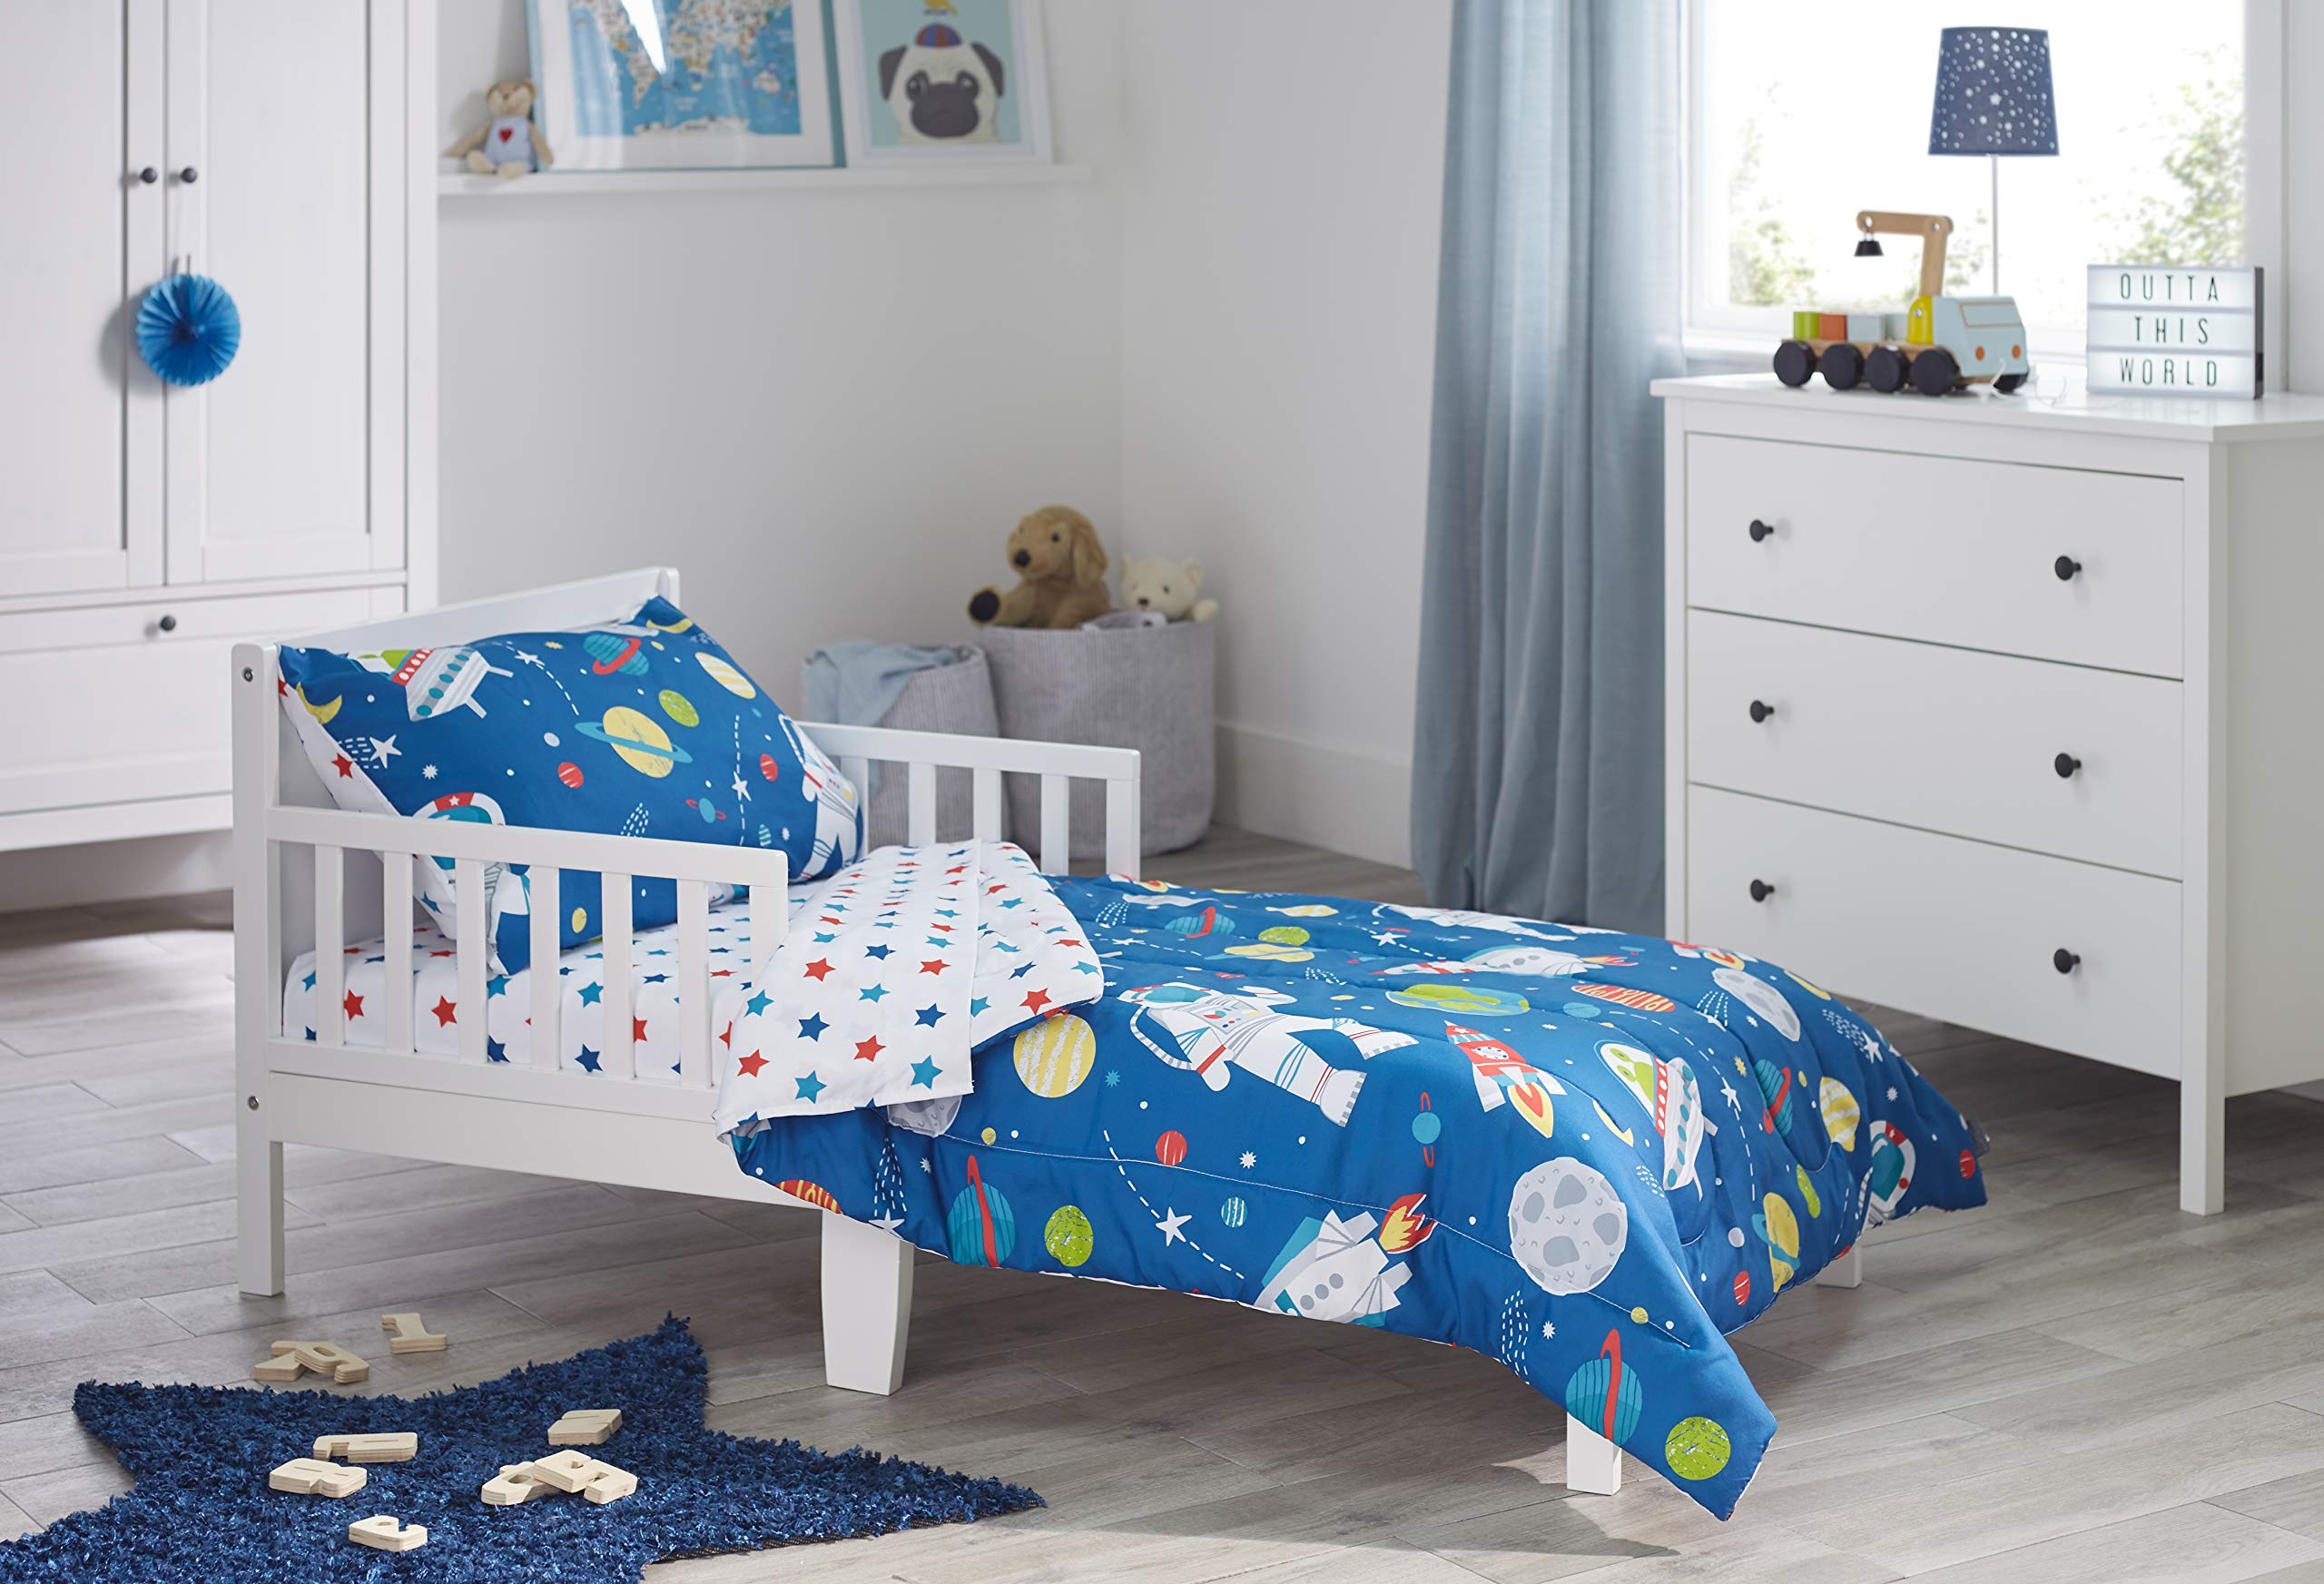 Bloomsbury Mill - 4 Piece Toddler Comforter Set - Outer Space, Rocket & Planet - Blue - Kids Bedding Set by Bloomsbury Mill